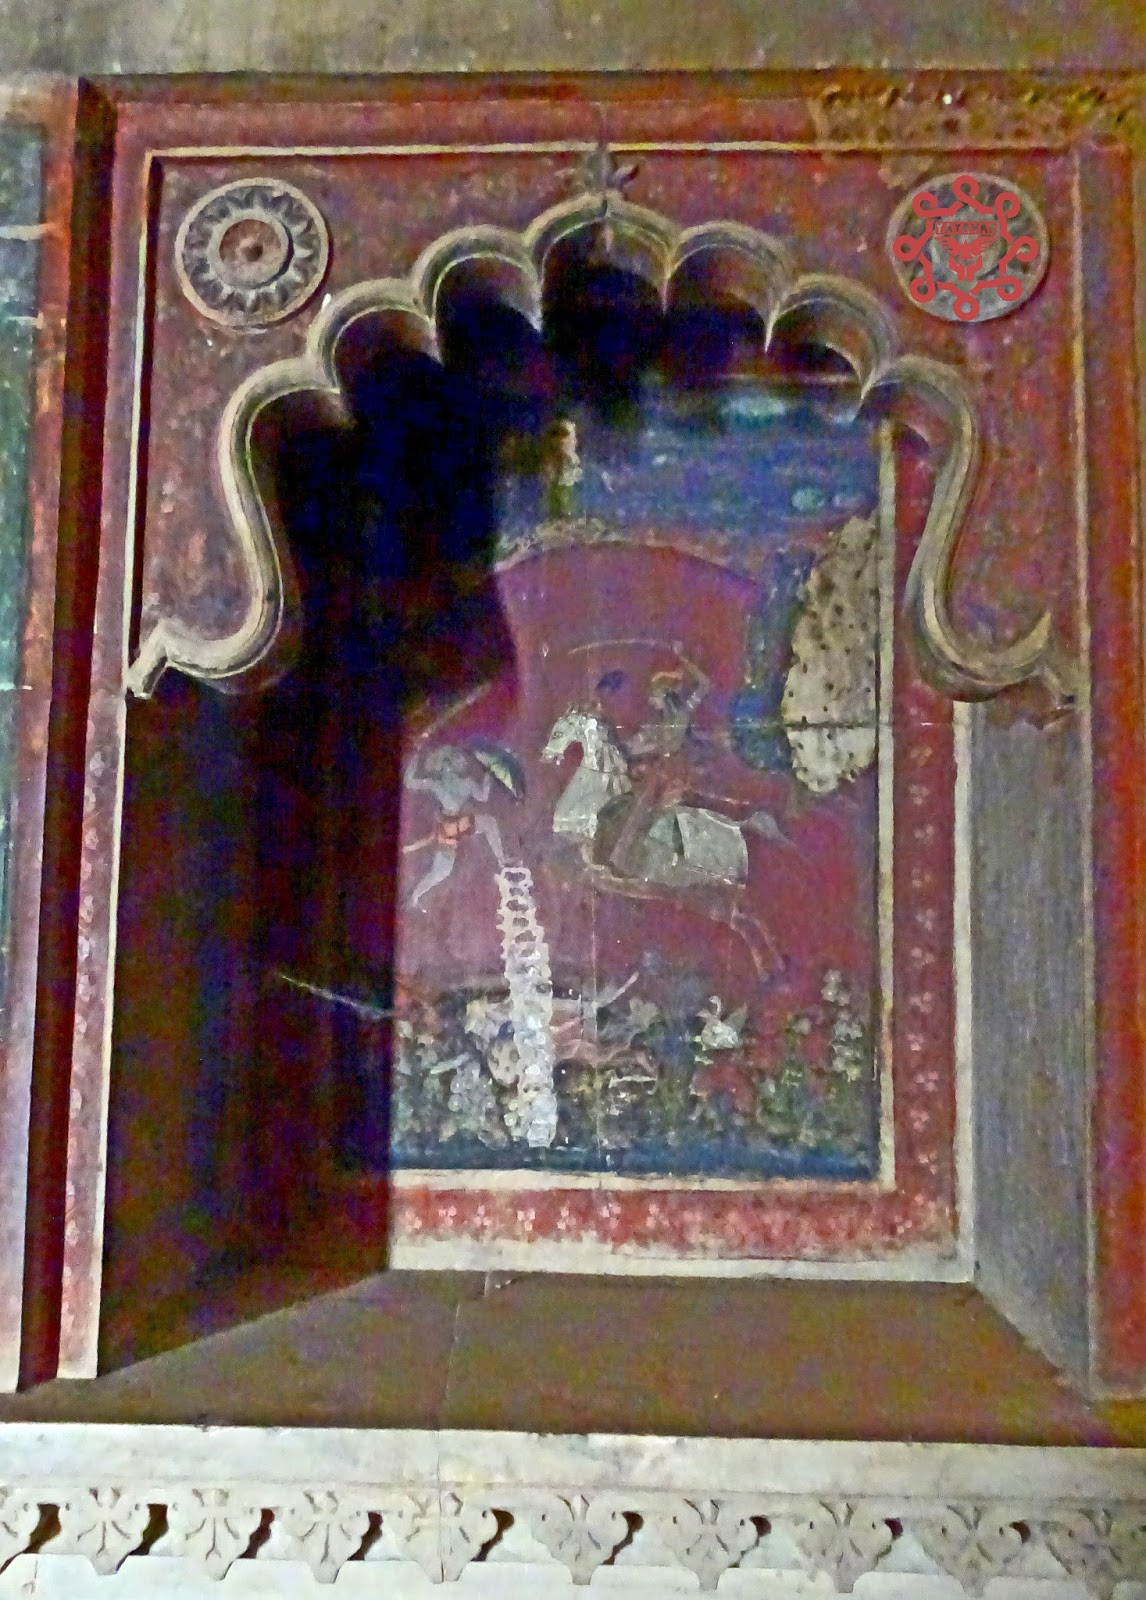 Murals On Walls Of Taragarh Fort